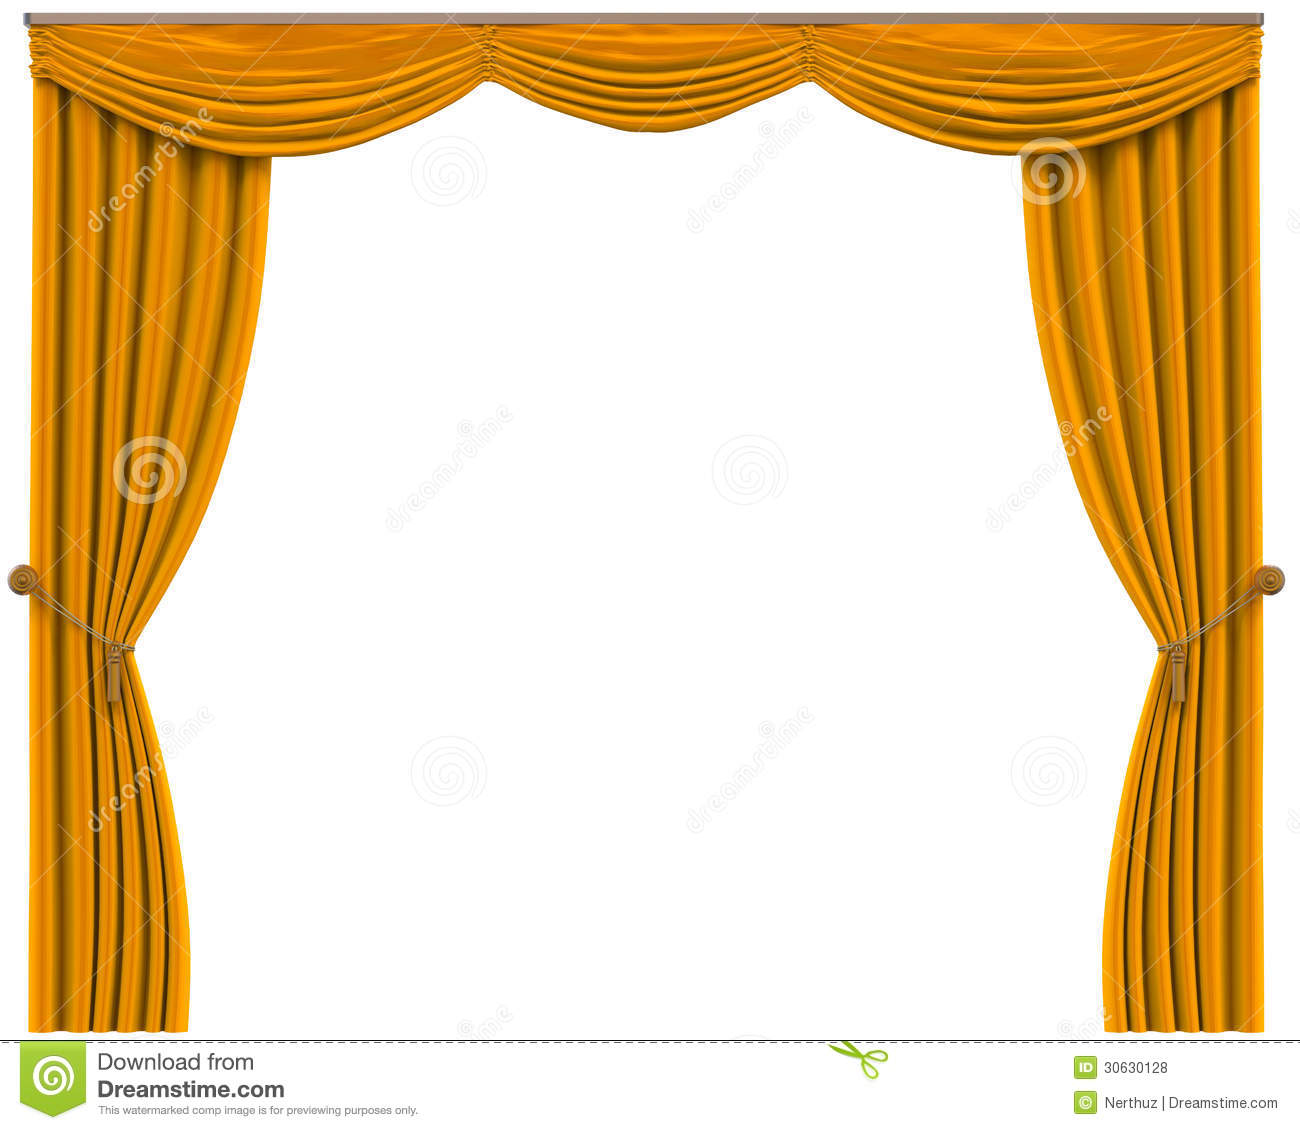 Royalty free or white curtain background drapes royalty free stock - Royalty Free Stock Photo Curtains Isolated Render White